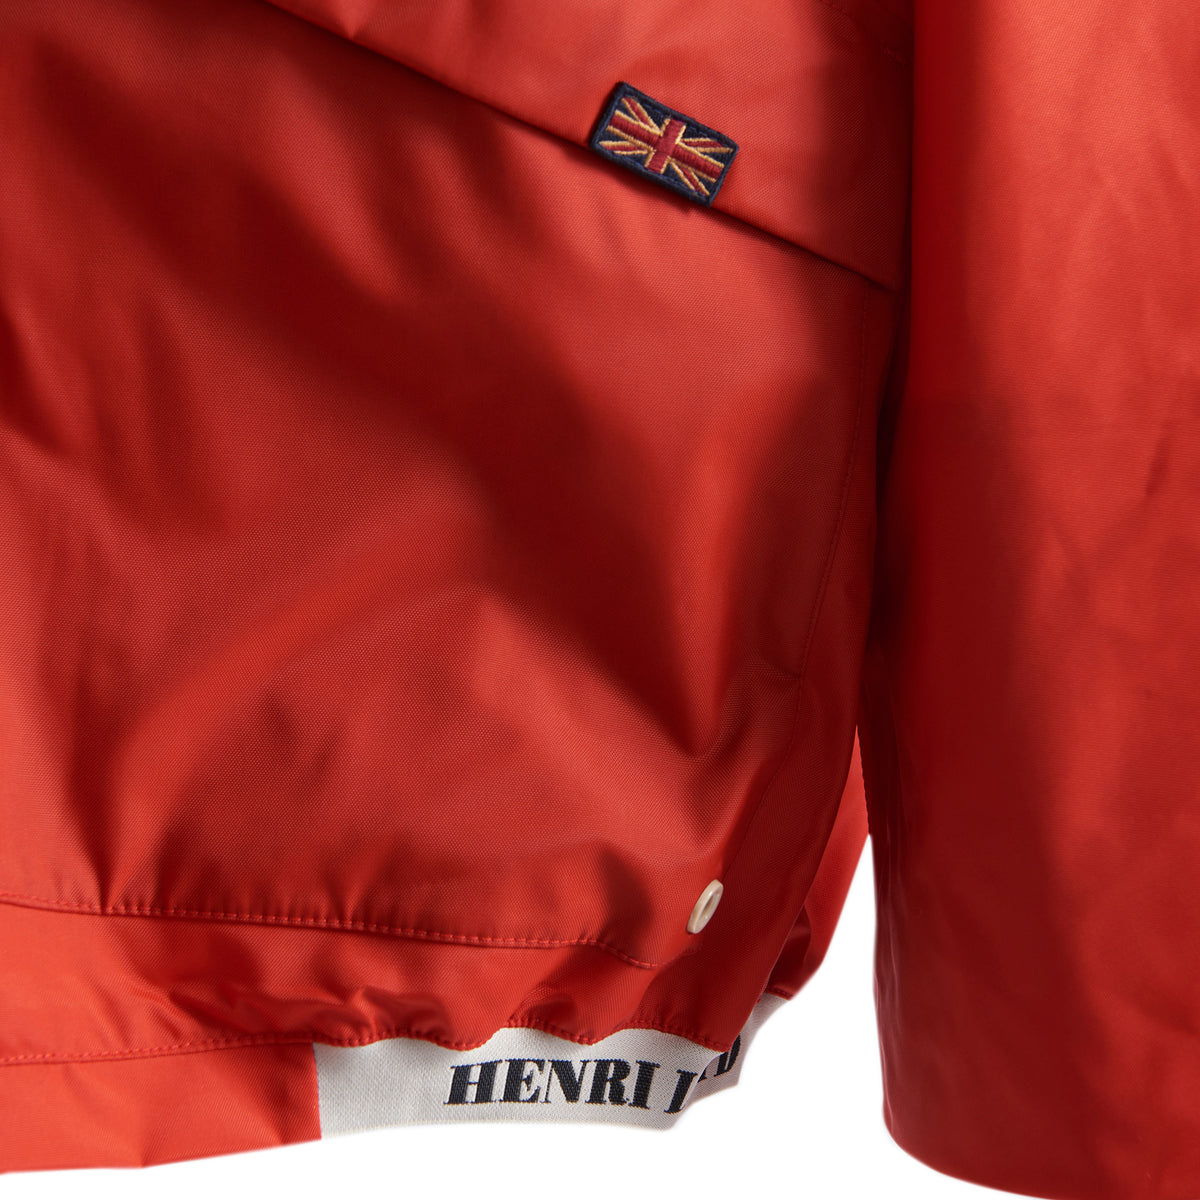 Henri Lloyd X Nigel Cabourn Waterproof Spray Jacket Old Red Cuff